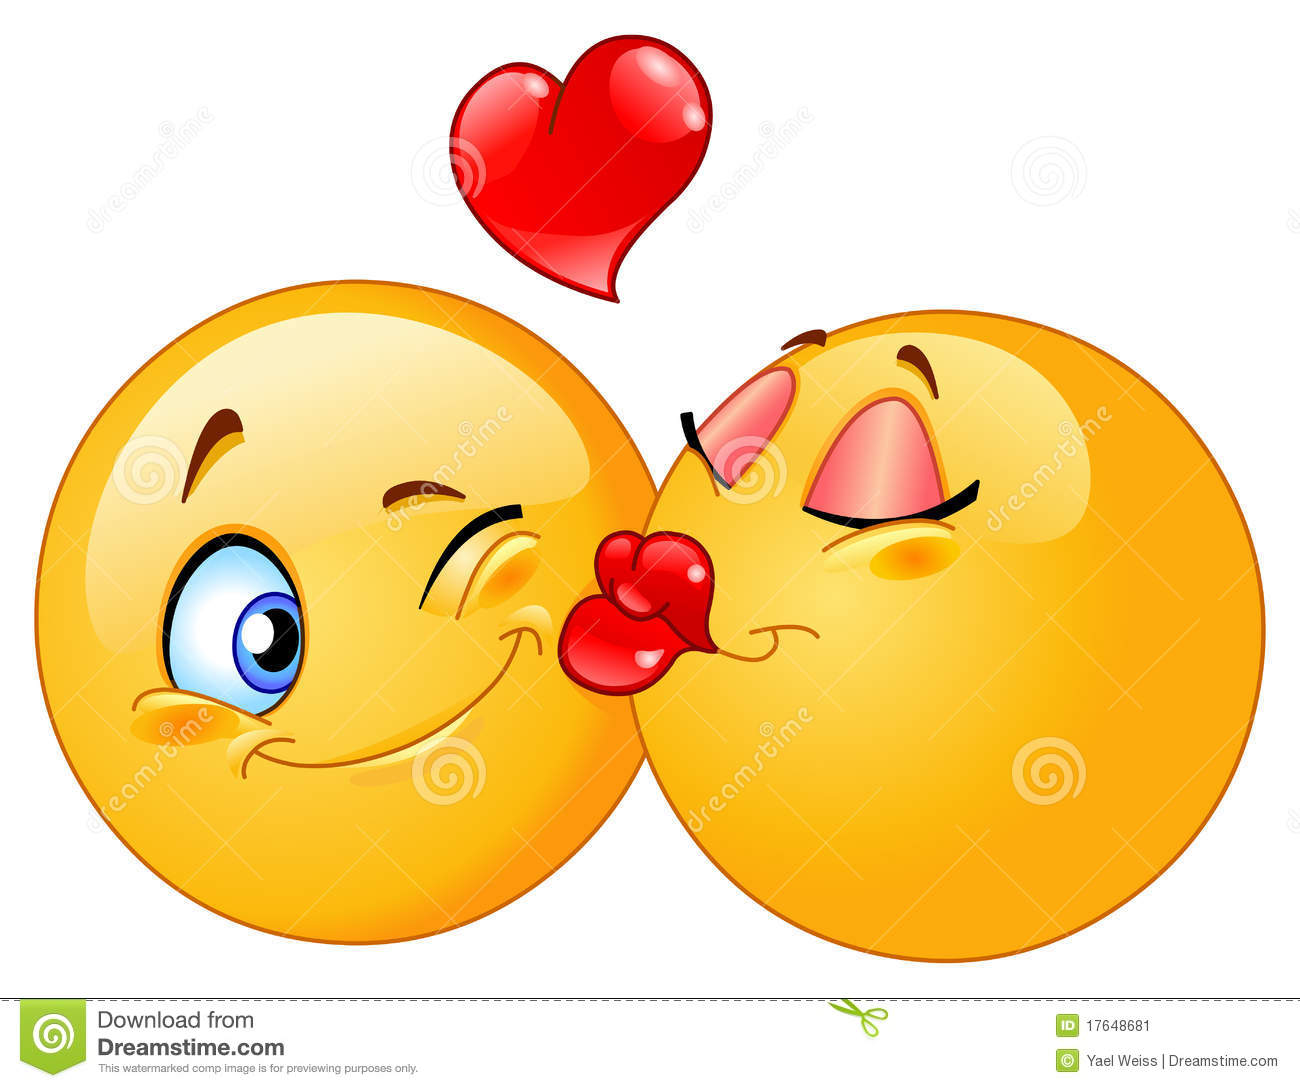 Kissing Emoticons Stock Image - Image: 17648681